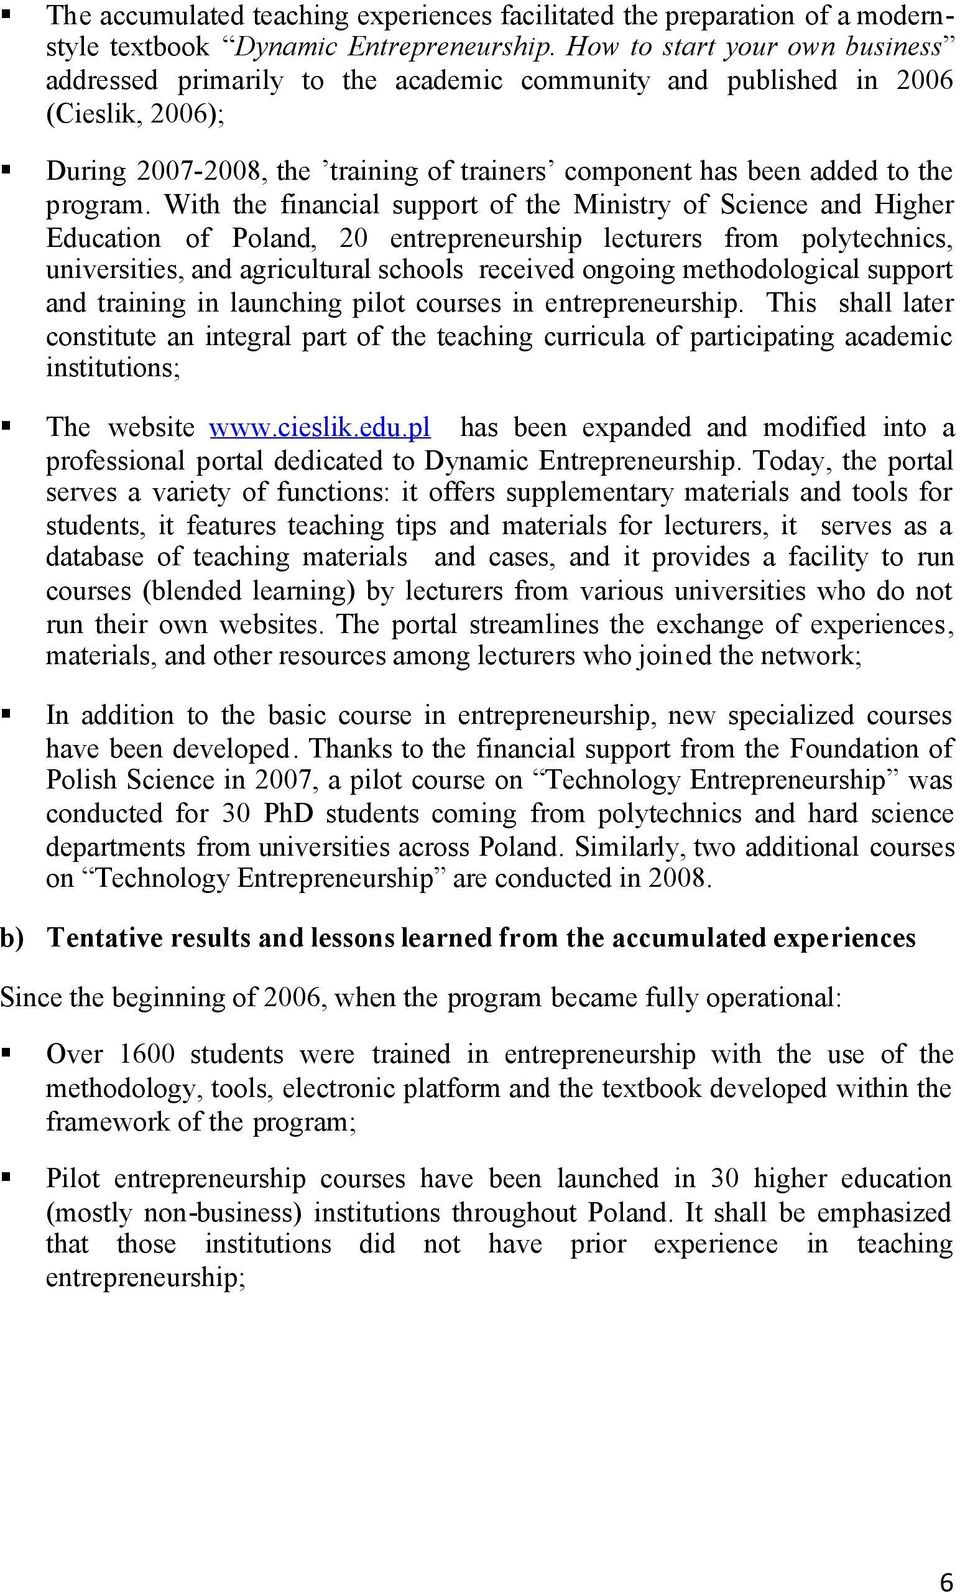 With the financial support of the Ministry of Science and Higher Education of Poland, 20 entrepreneurship lecturers from polytechnics, universities, and agricultural schools received ongoing